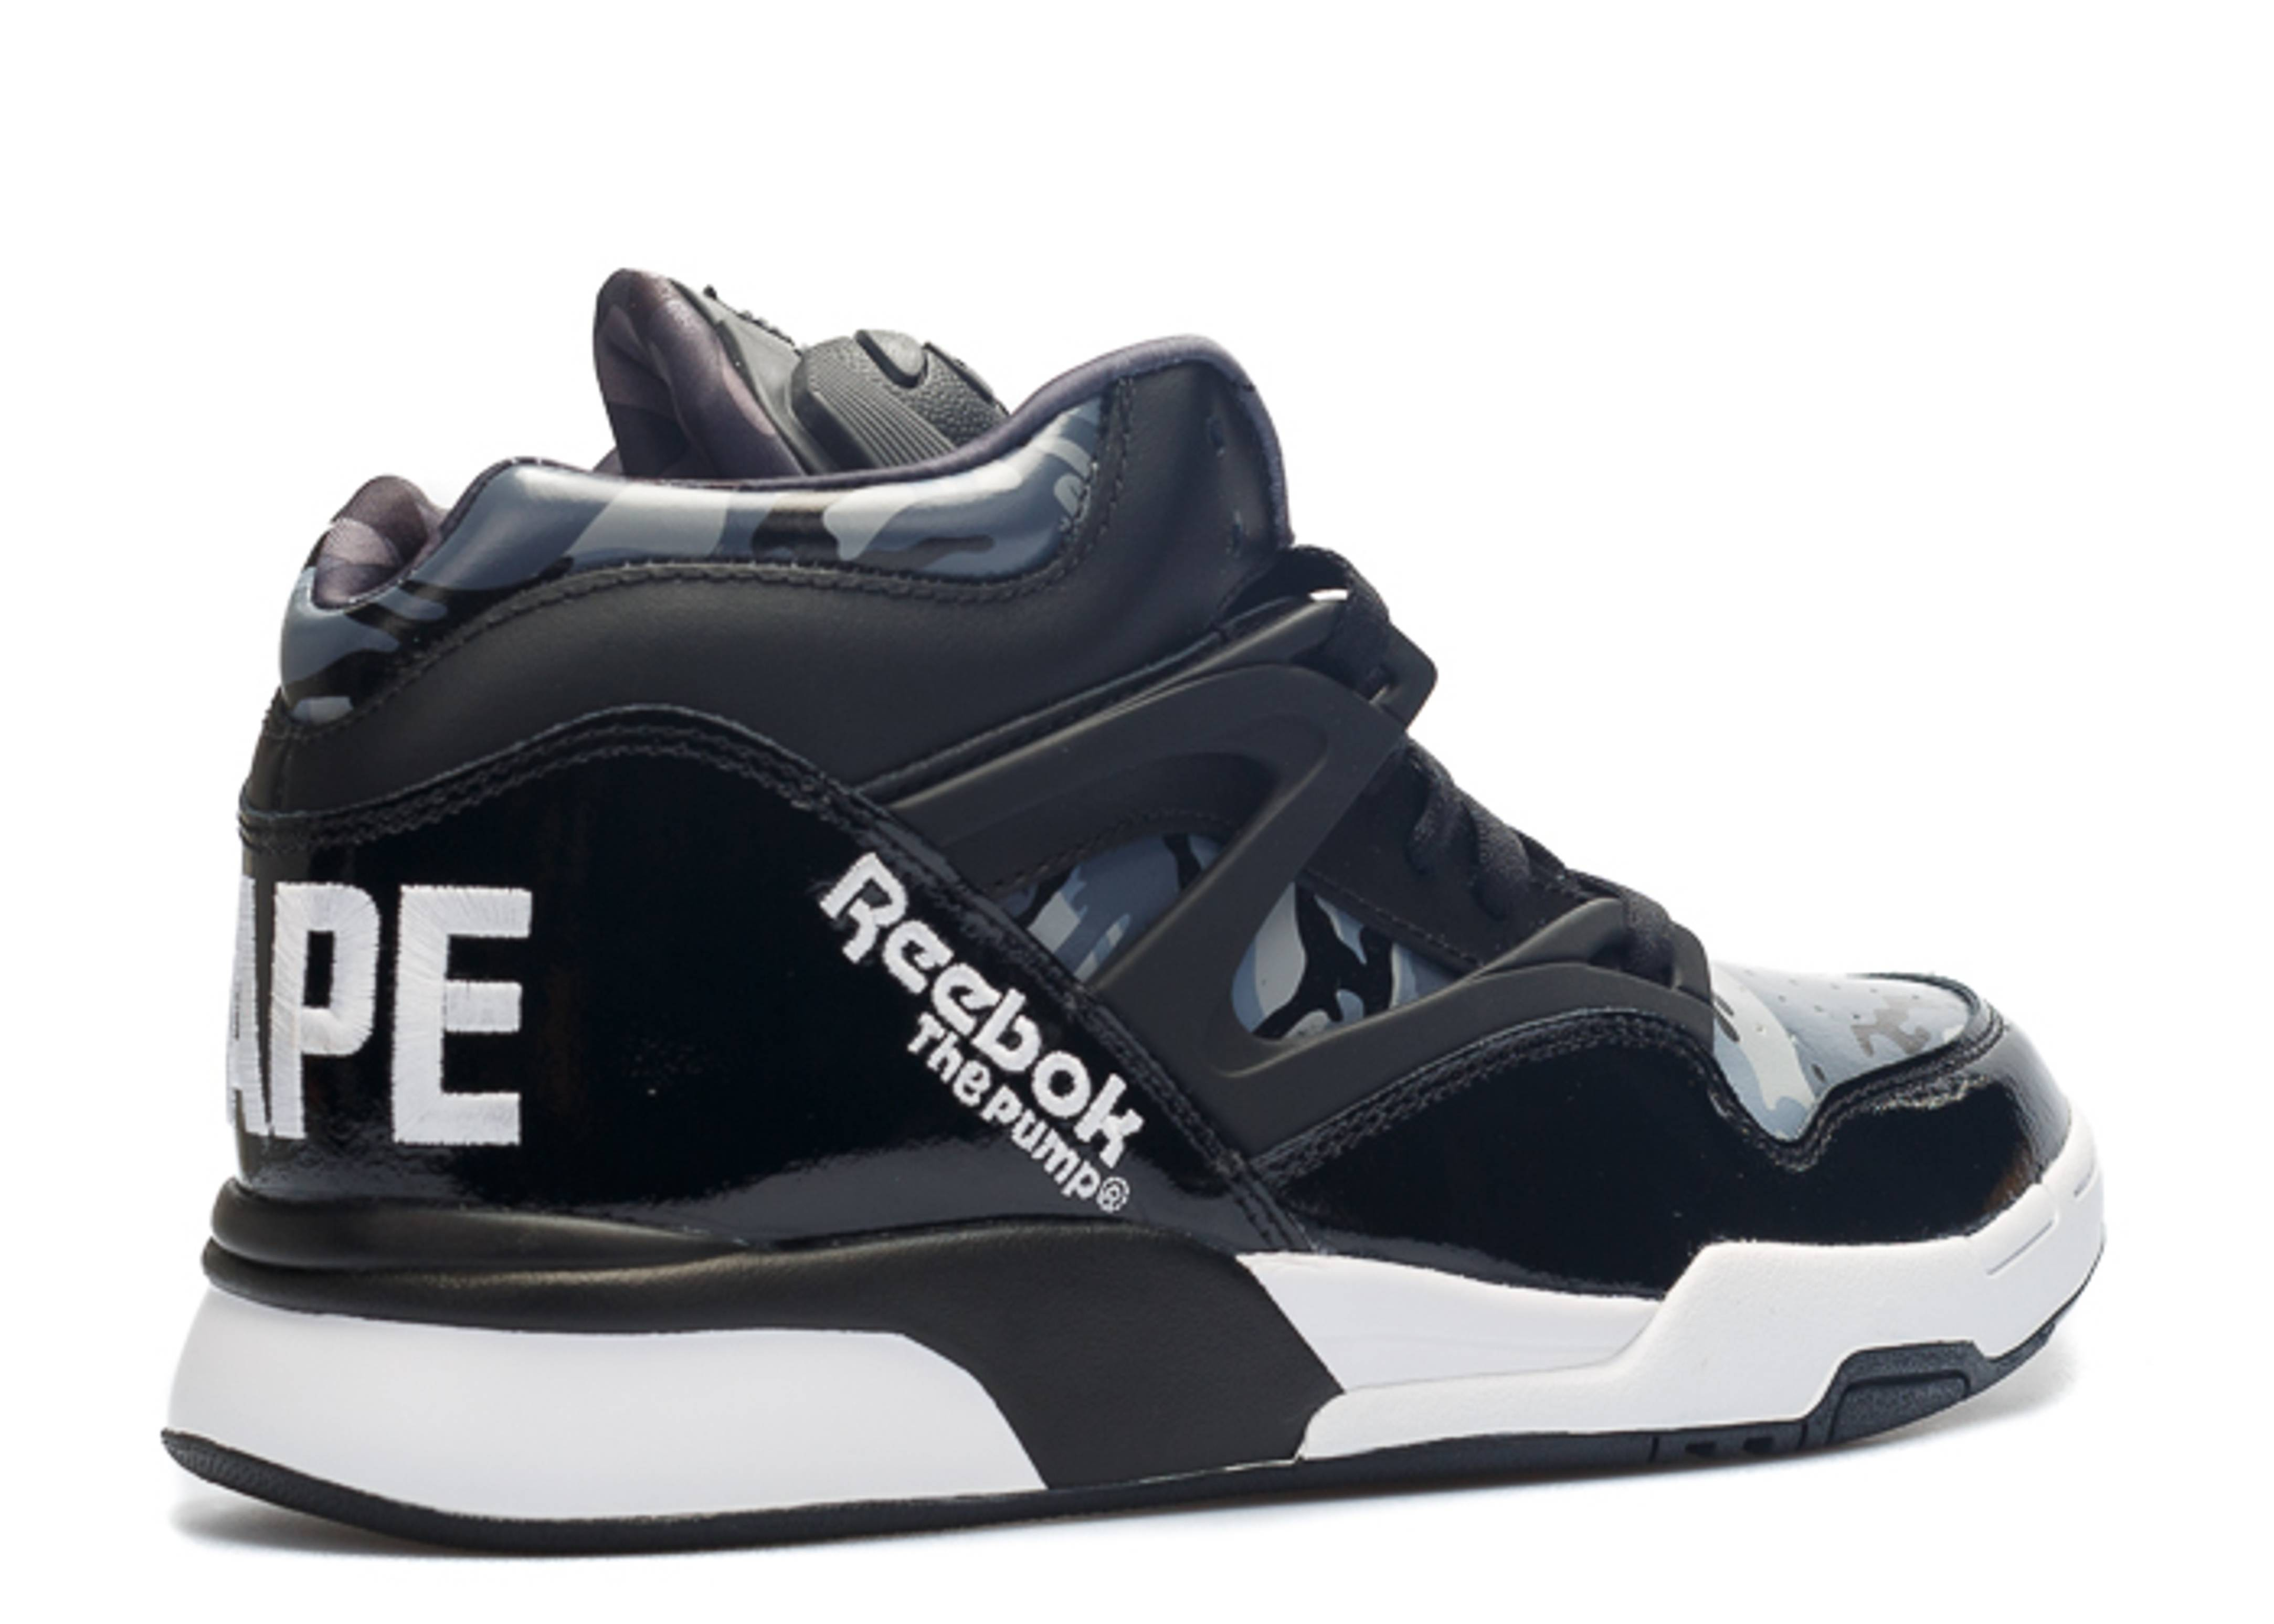 reebok pump omni lite pas cher off71 r ductions. Black Bedroom Furniture Sets. Home Design Ideas